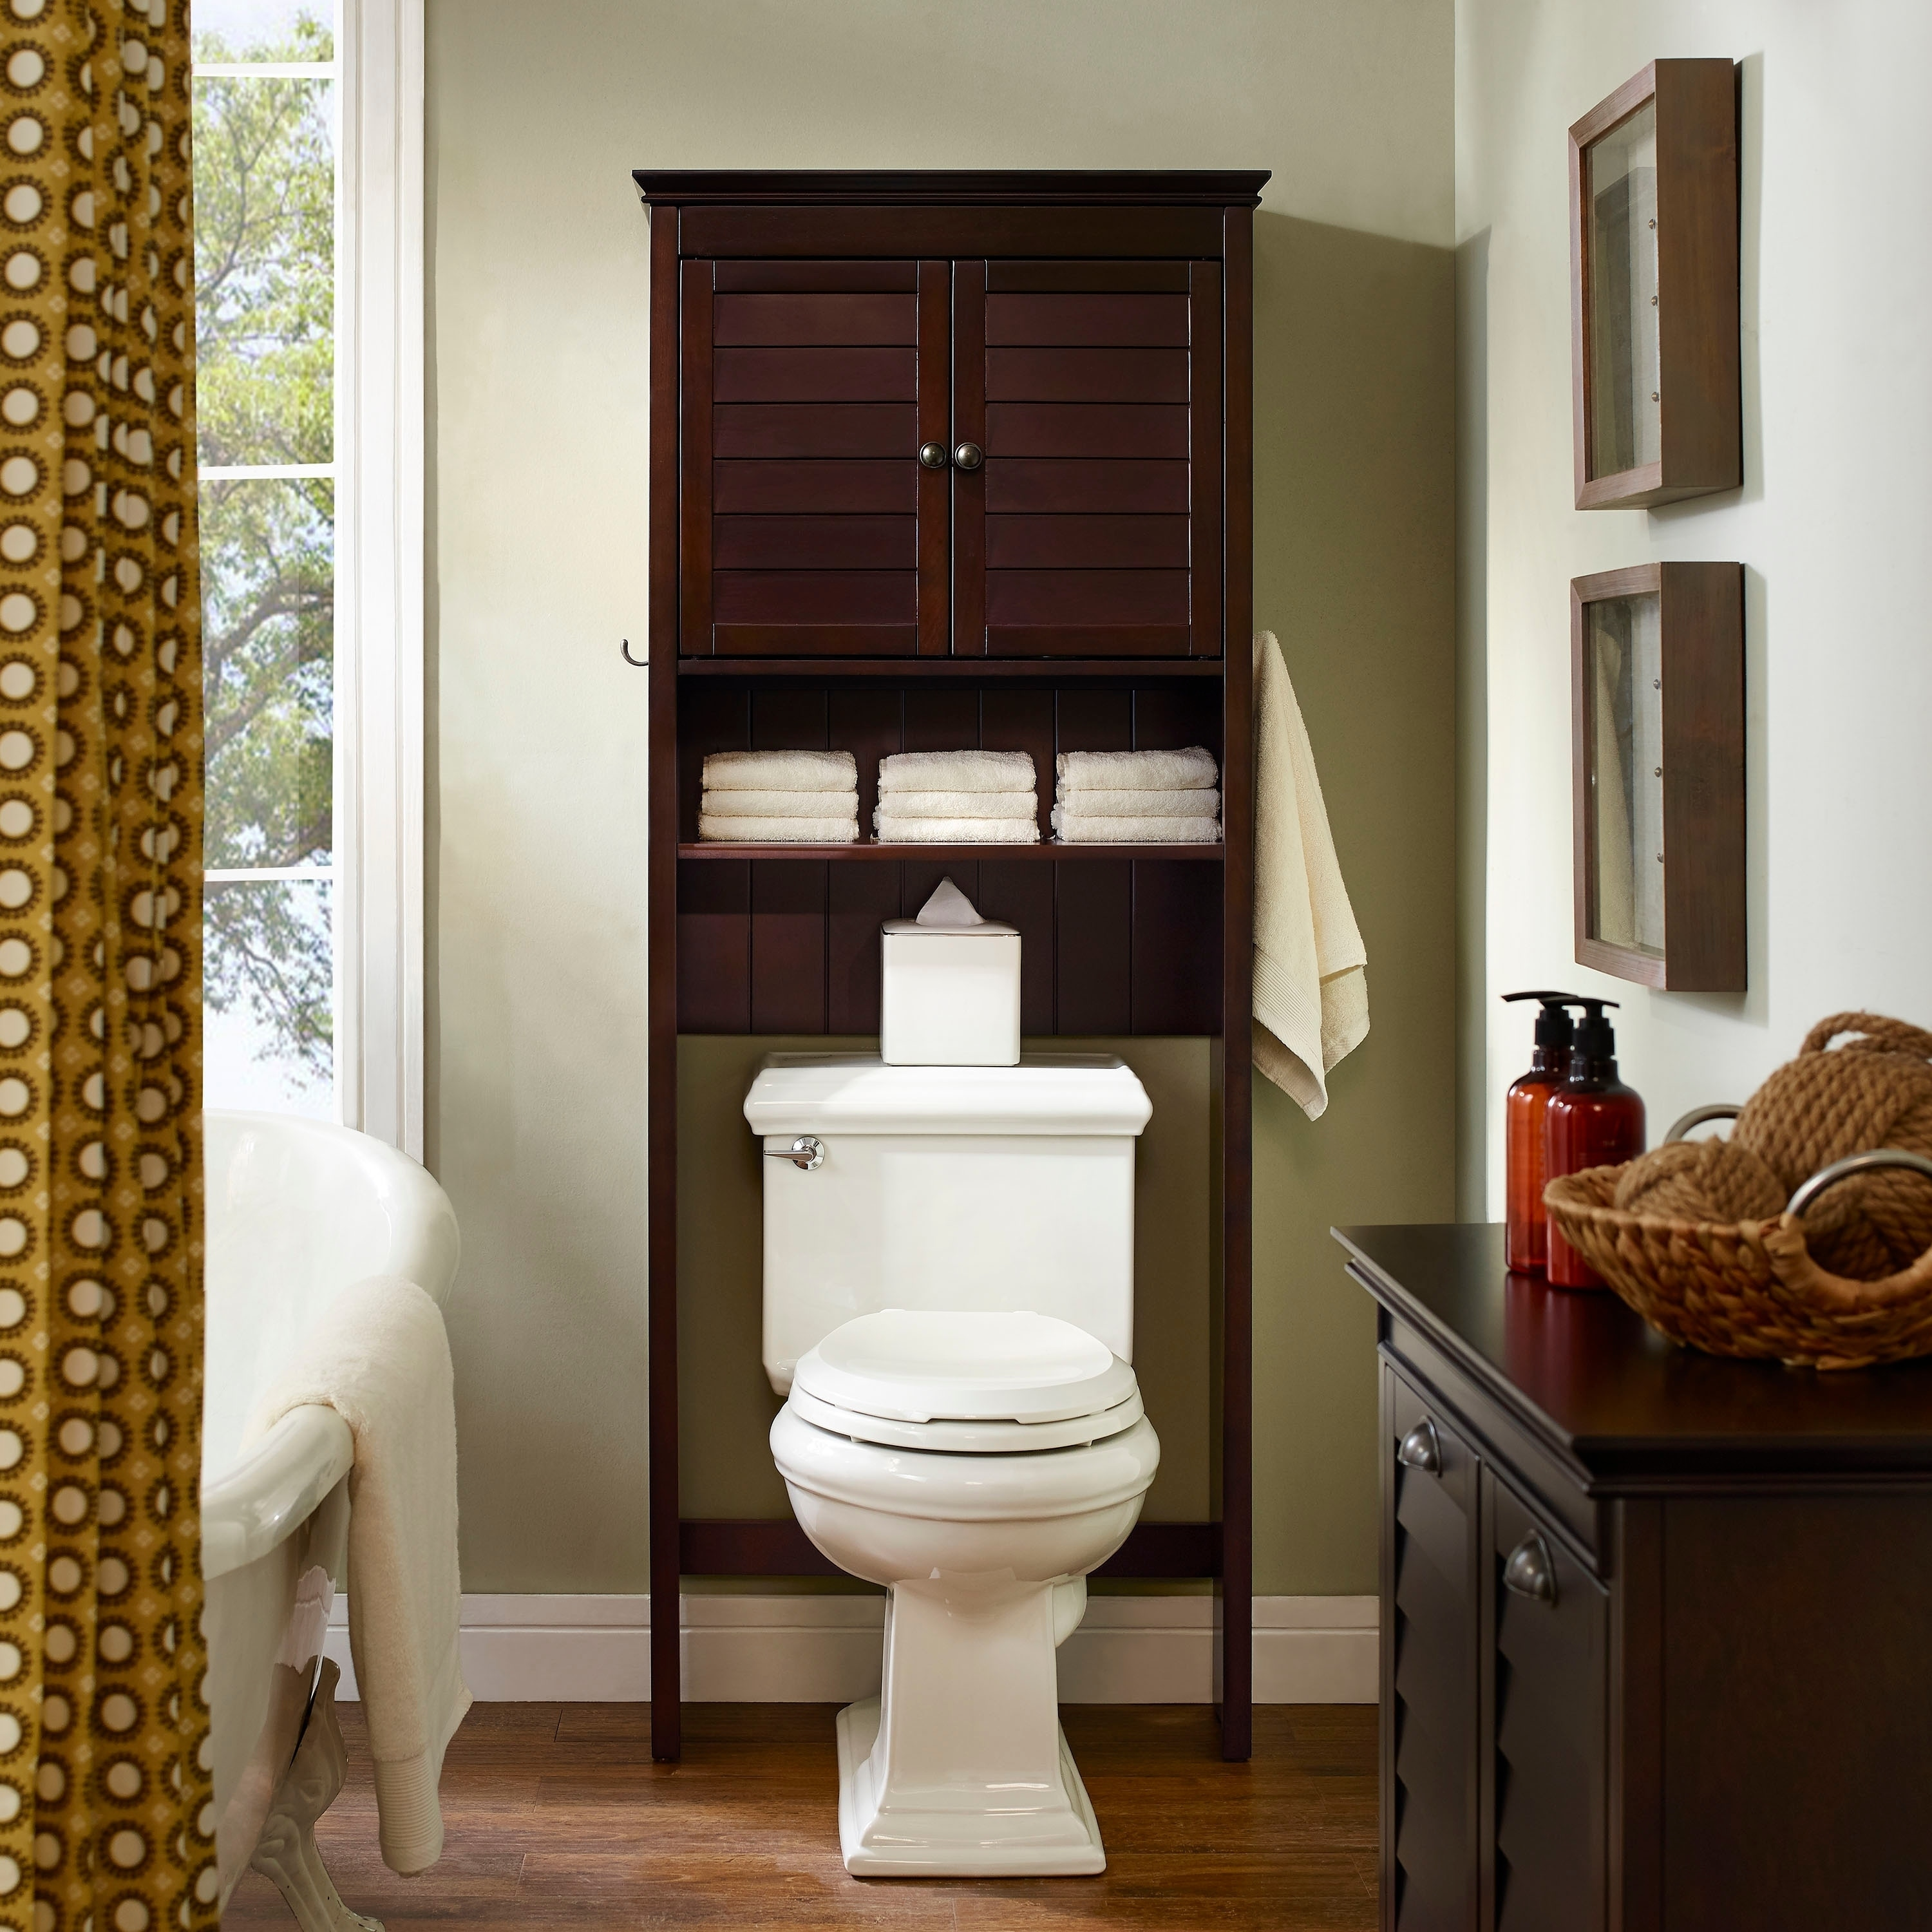 Bathroom Toilet Cabinets Buy Bathroom Cabinets Storage Online At Overstock Our Best